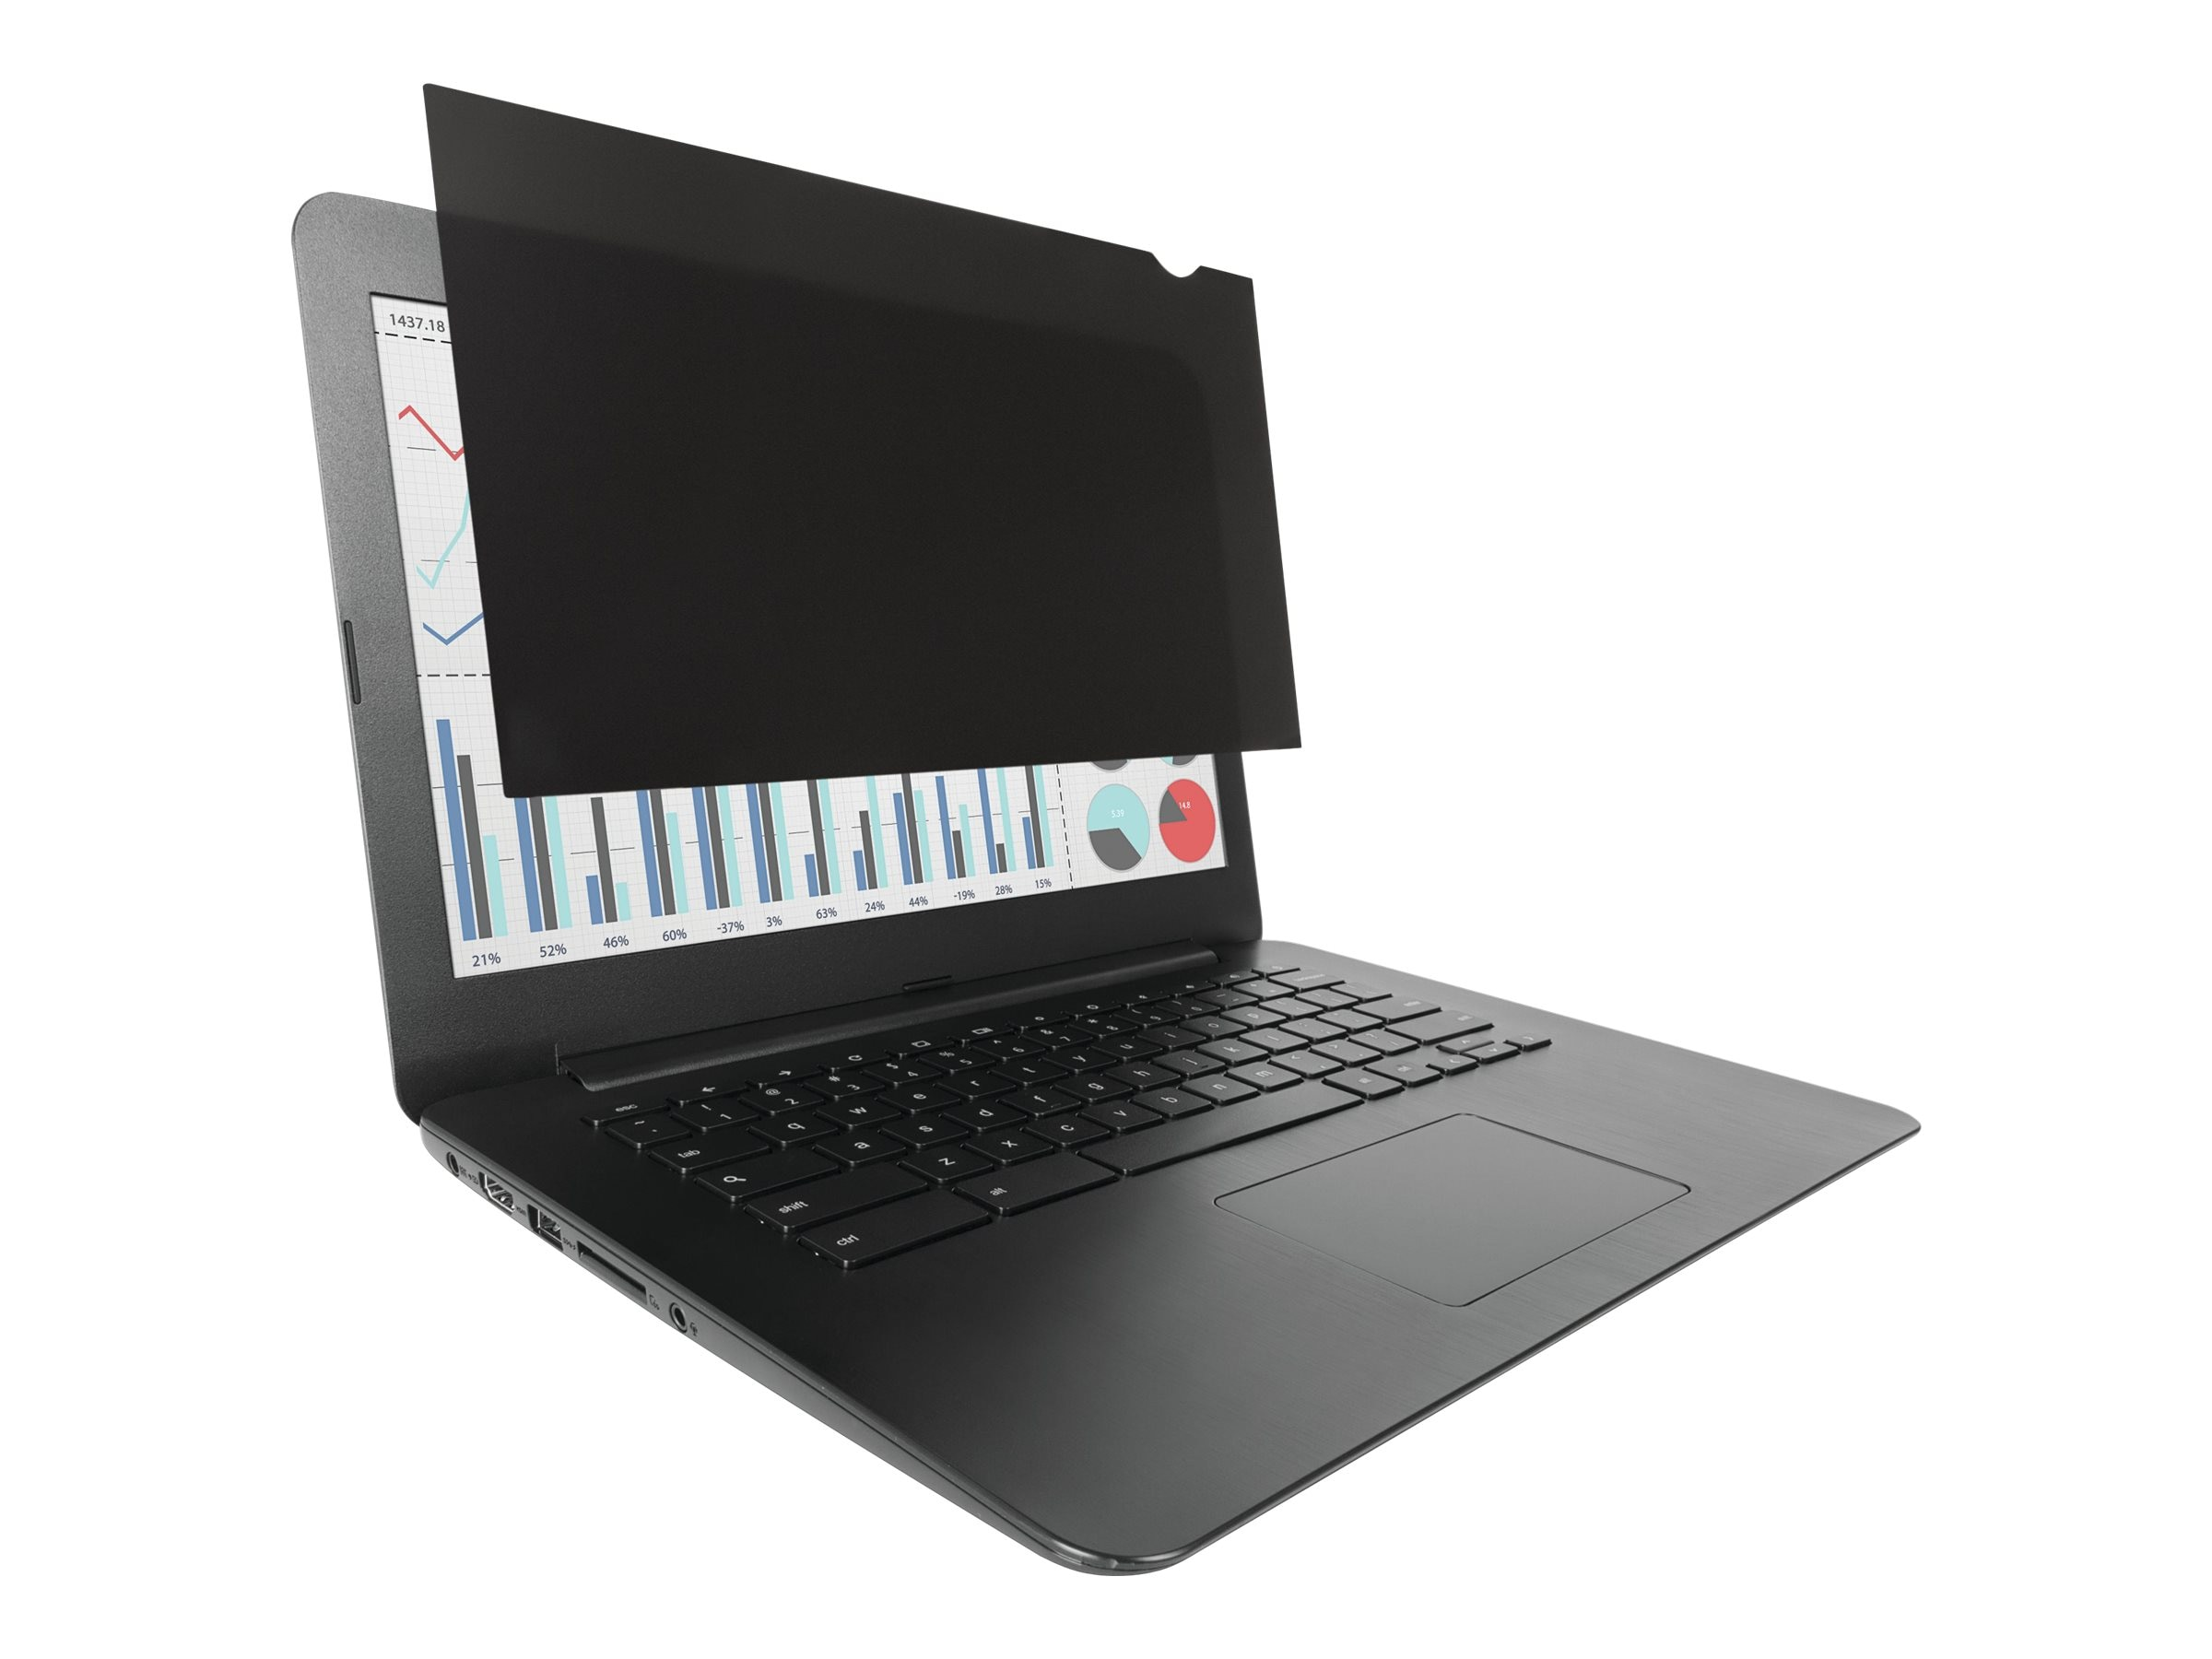 Kensington FP140W9 Laptop Privacy Screen, K52793WW